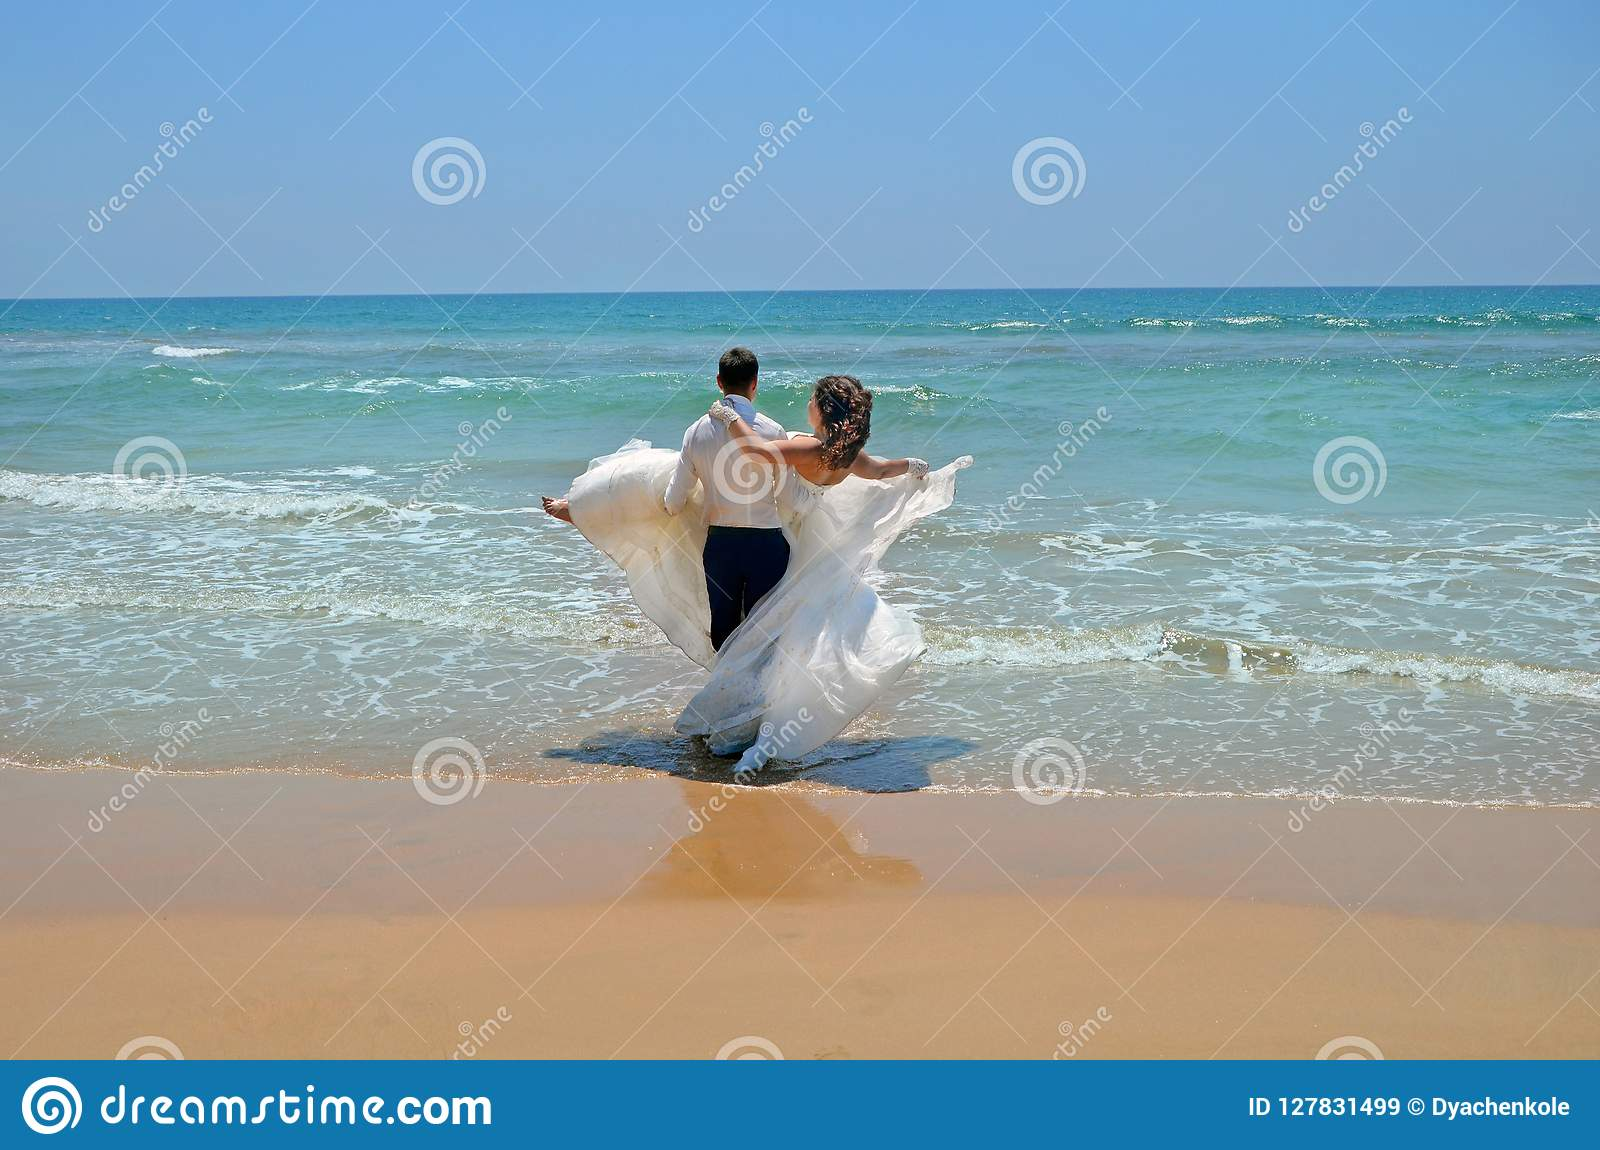 The groom in a suit carries on his hands the bride in a wedding dress in the waters of the Indian Ocean. Wedding and honeymoon